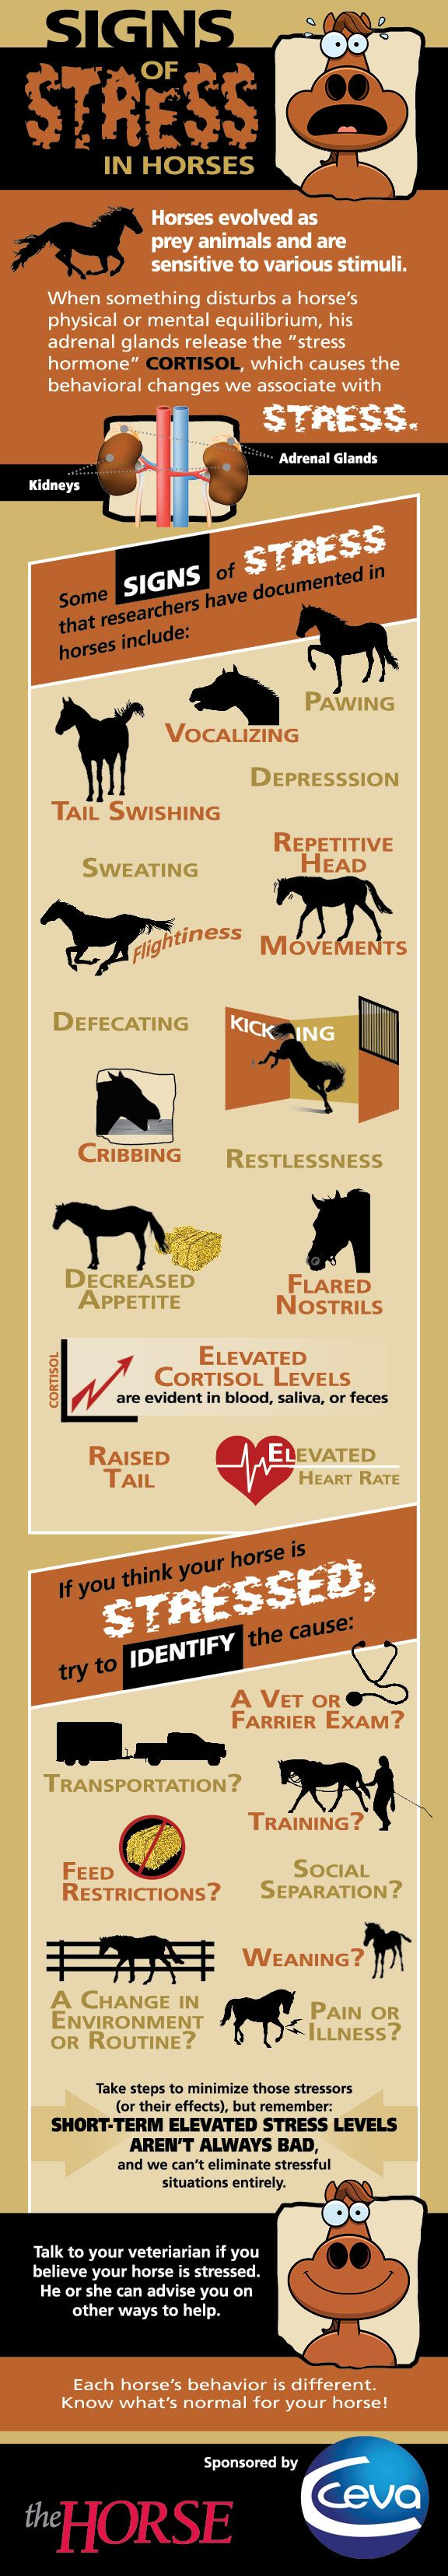 Signs of Stress in Horses - TheHorse.com |